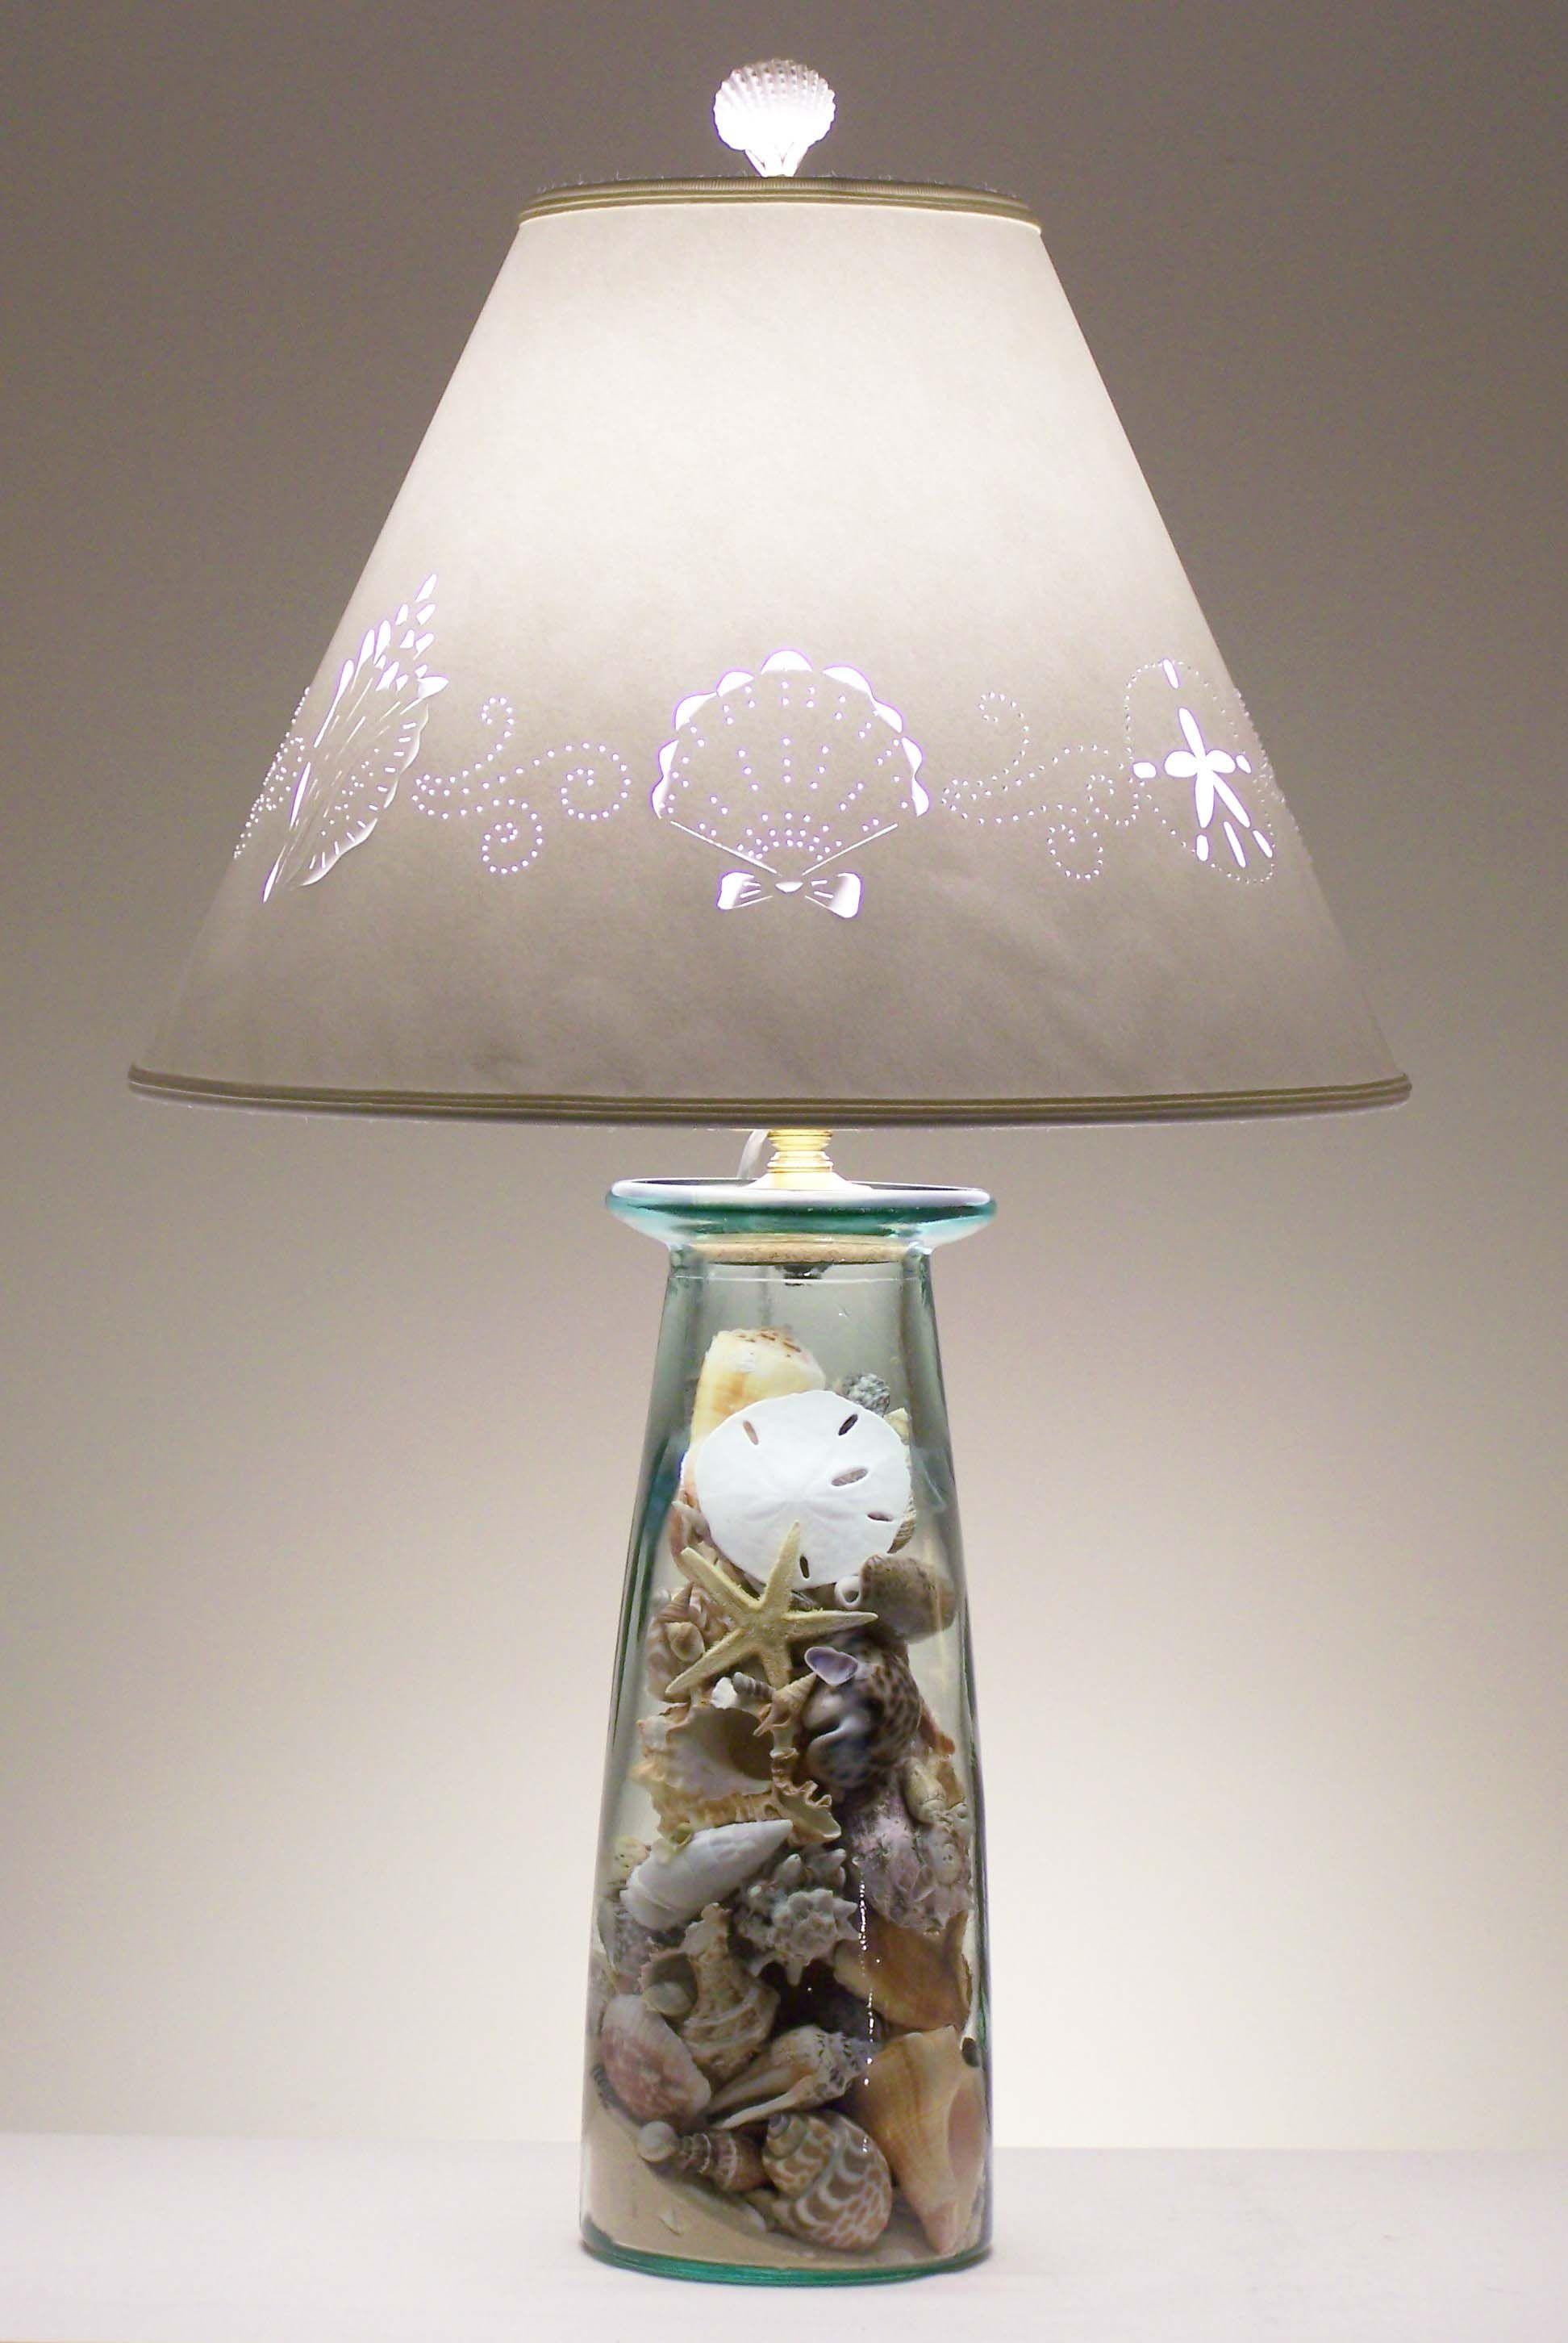 Space Themed Lamp How To Make A Seashell Lamp With A Rustic Shade Not